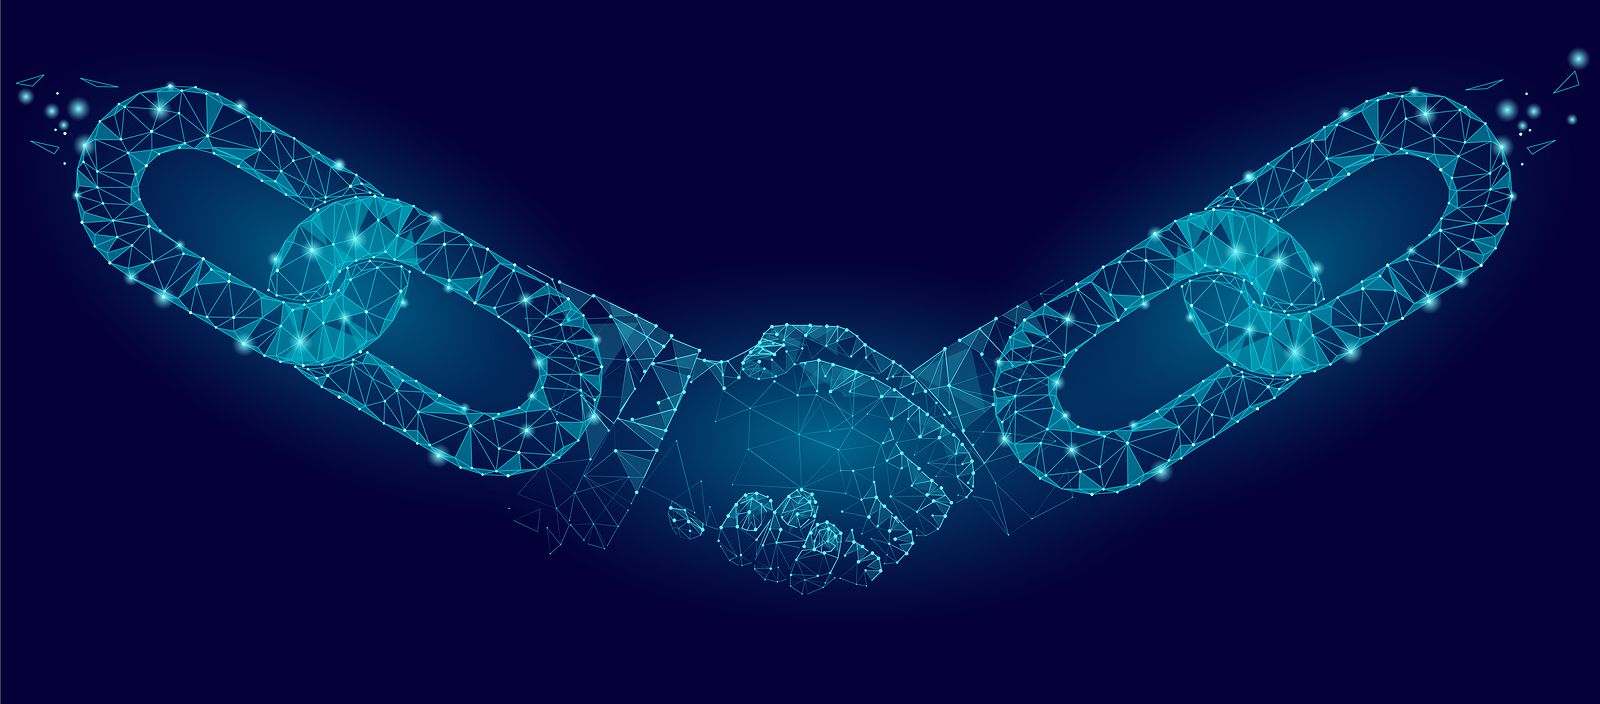 Making Smart Contracts, Smart. - How verifiable data can make smart contracts play an important role in today's business world.